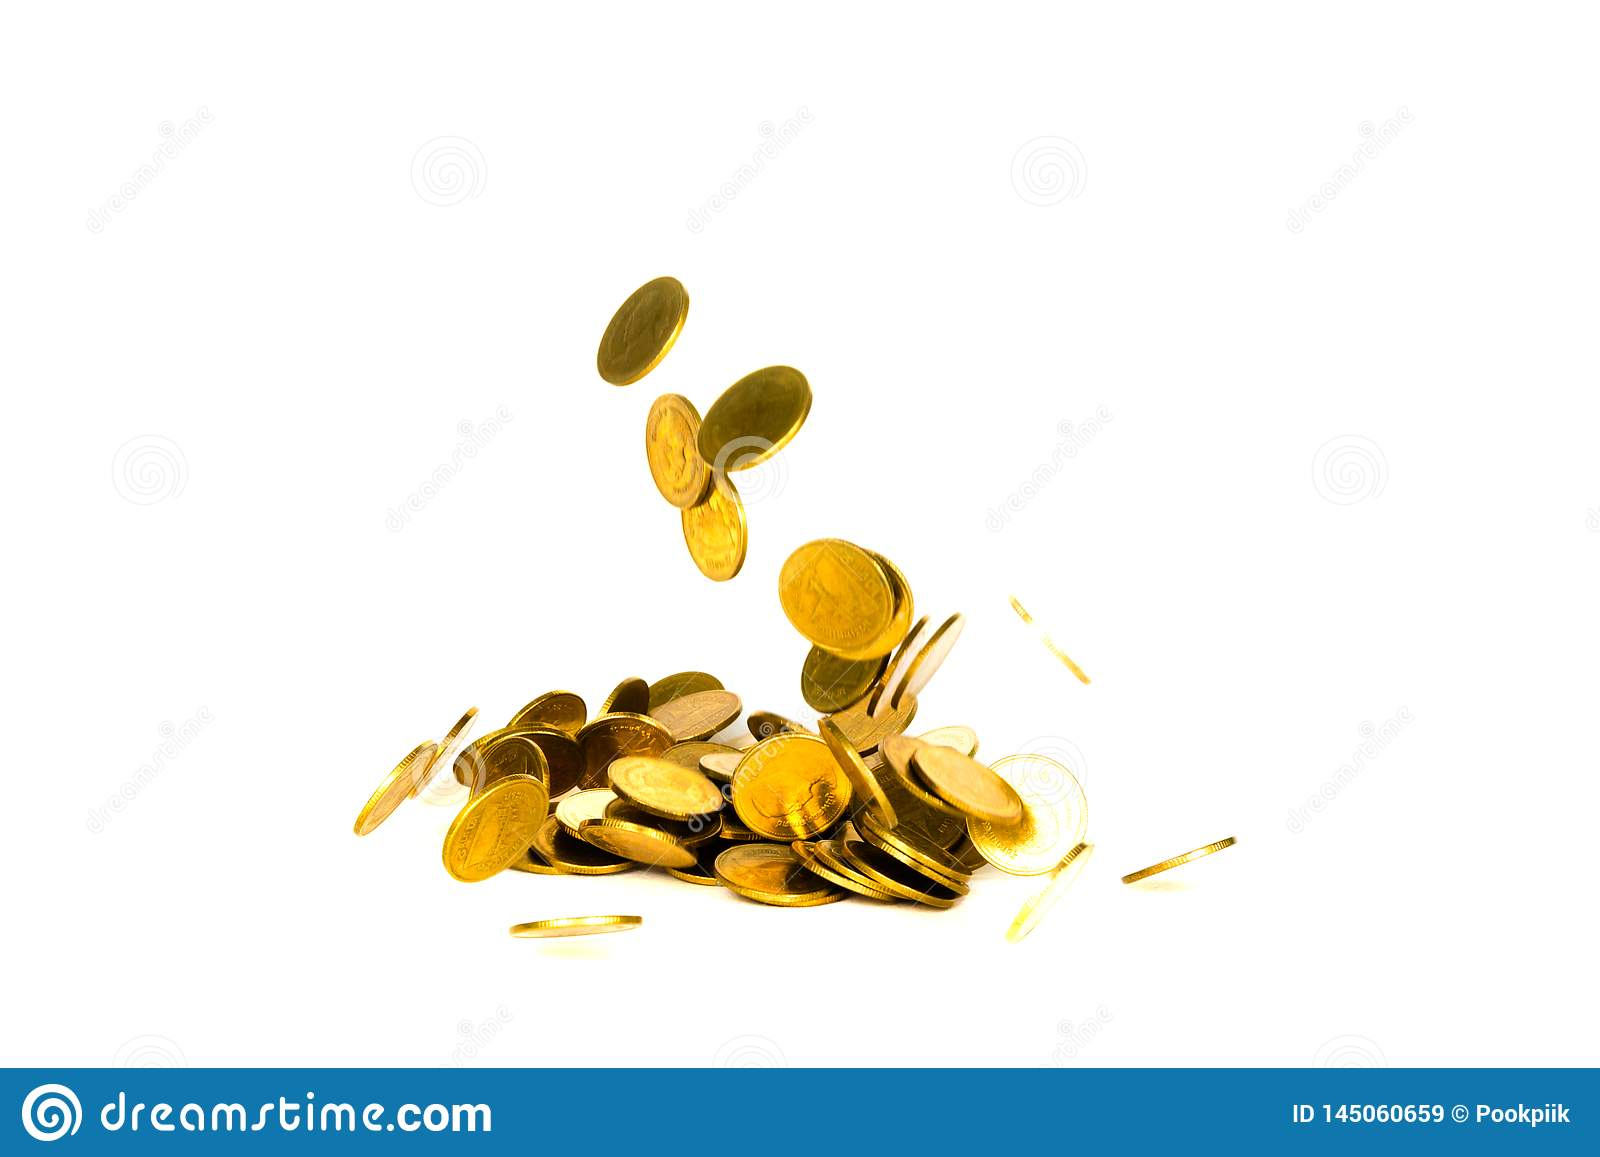 Movement of falling gold coin, flying coin, rain money isolated on white background, business and financial wealth and take profit